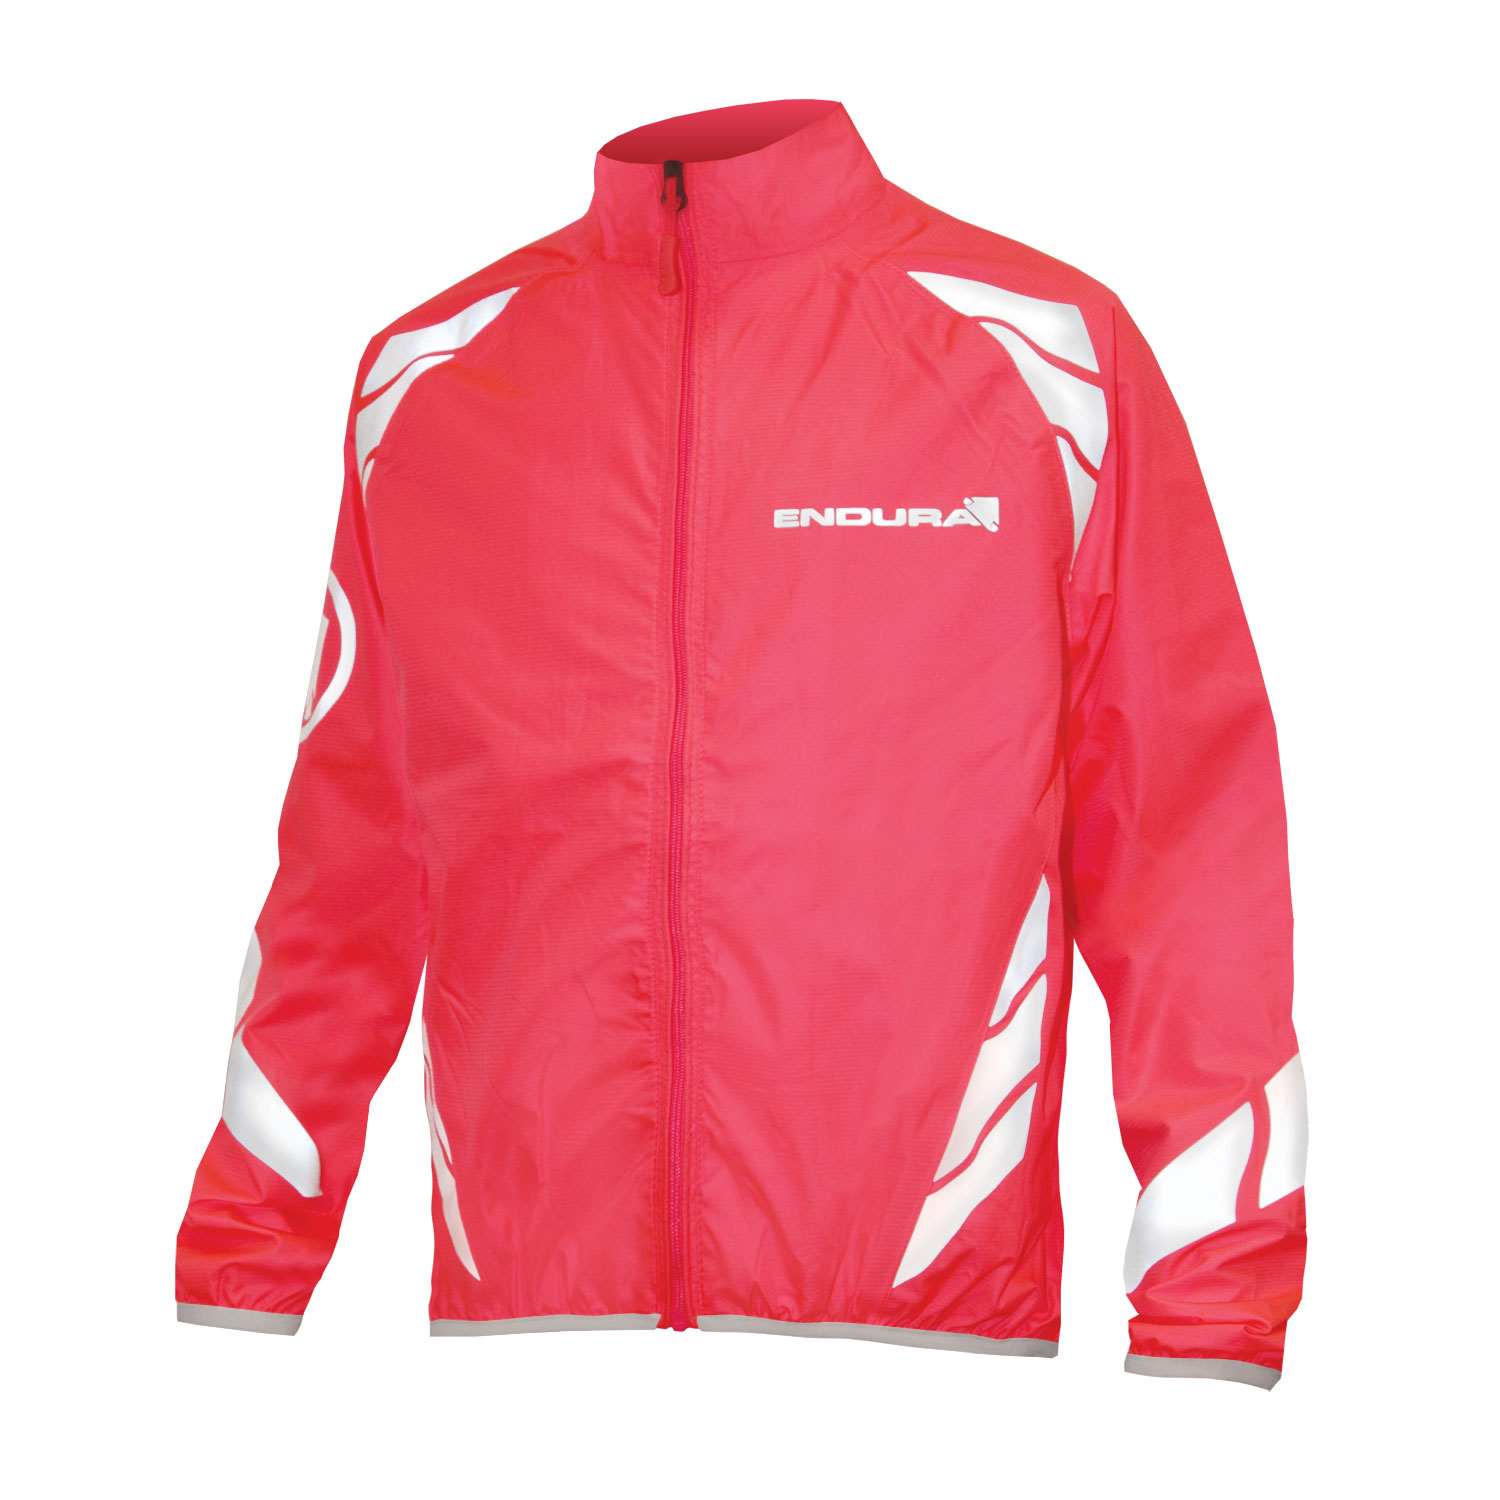 Kids Luminite Jacket Hi-Viz Pink